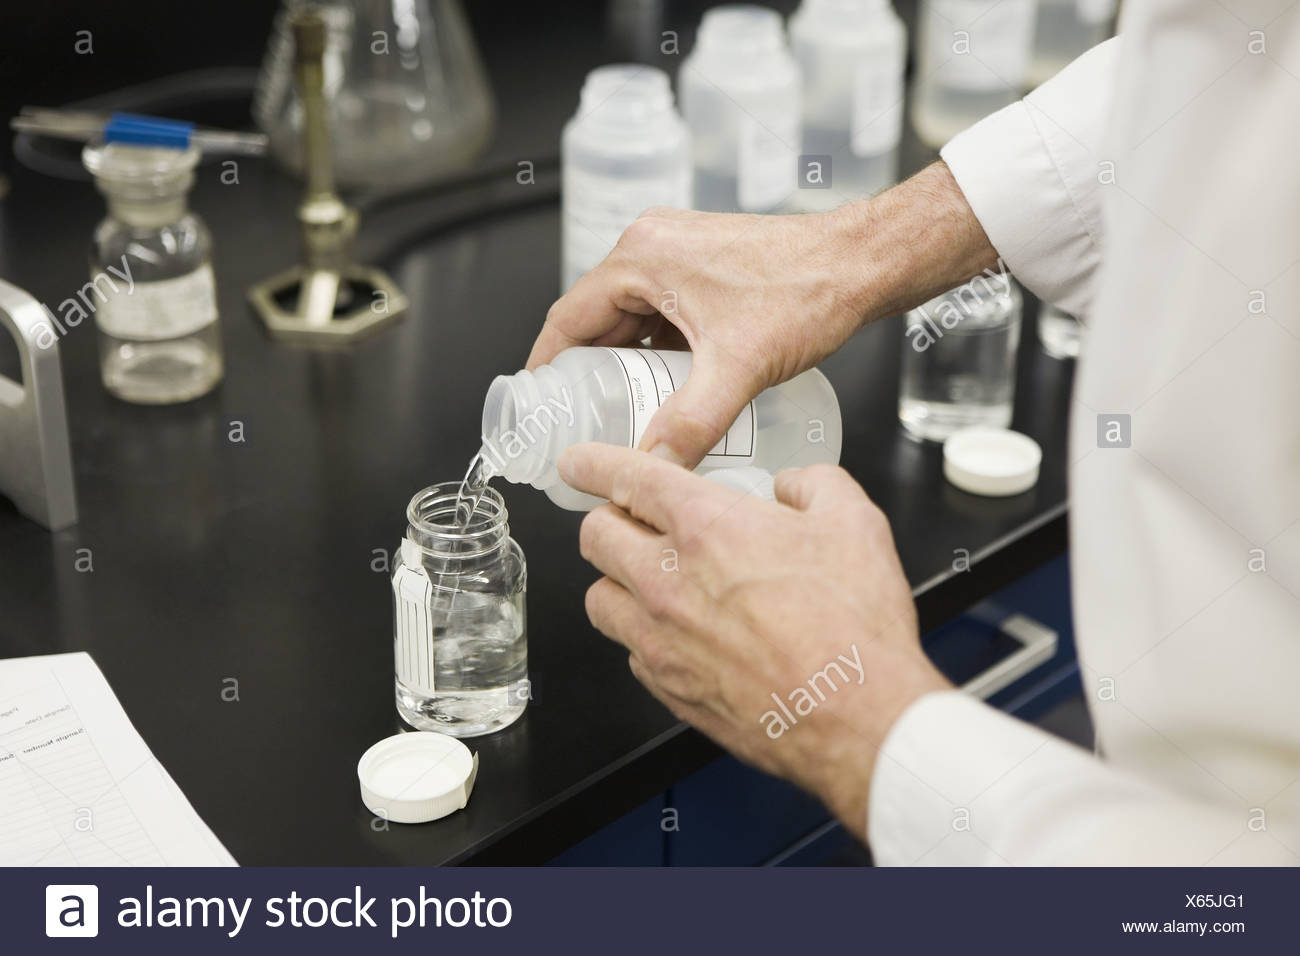 Mid section view of a scientist doing water testing experiment using defined substrate technology - Stock Image